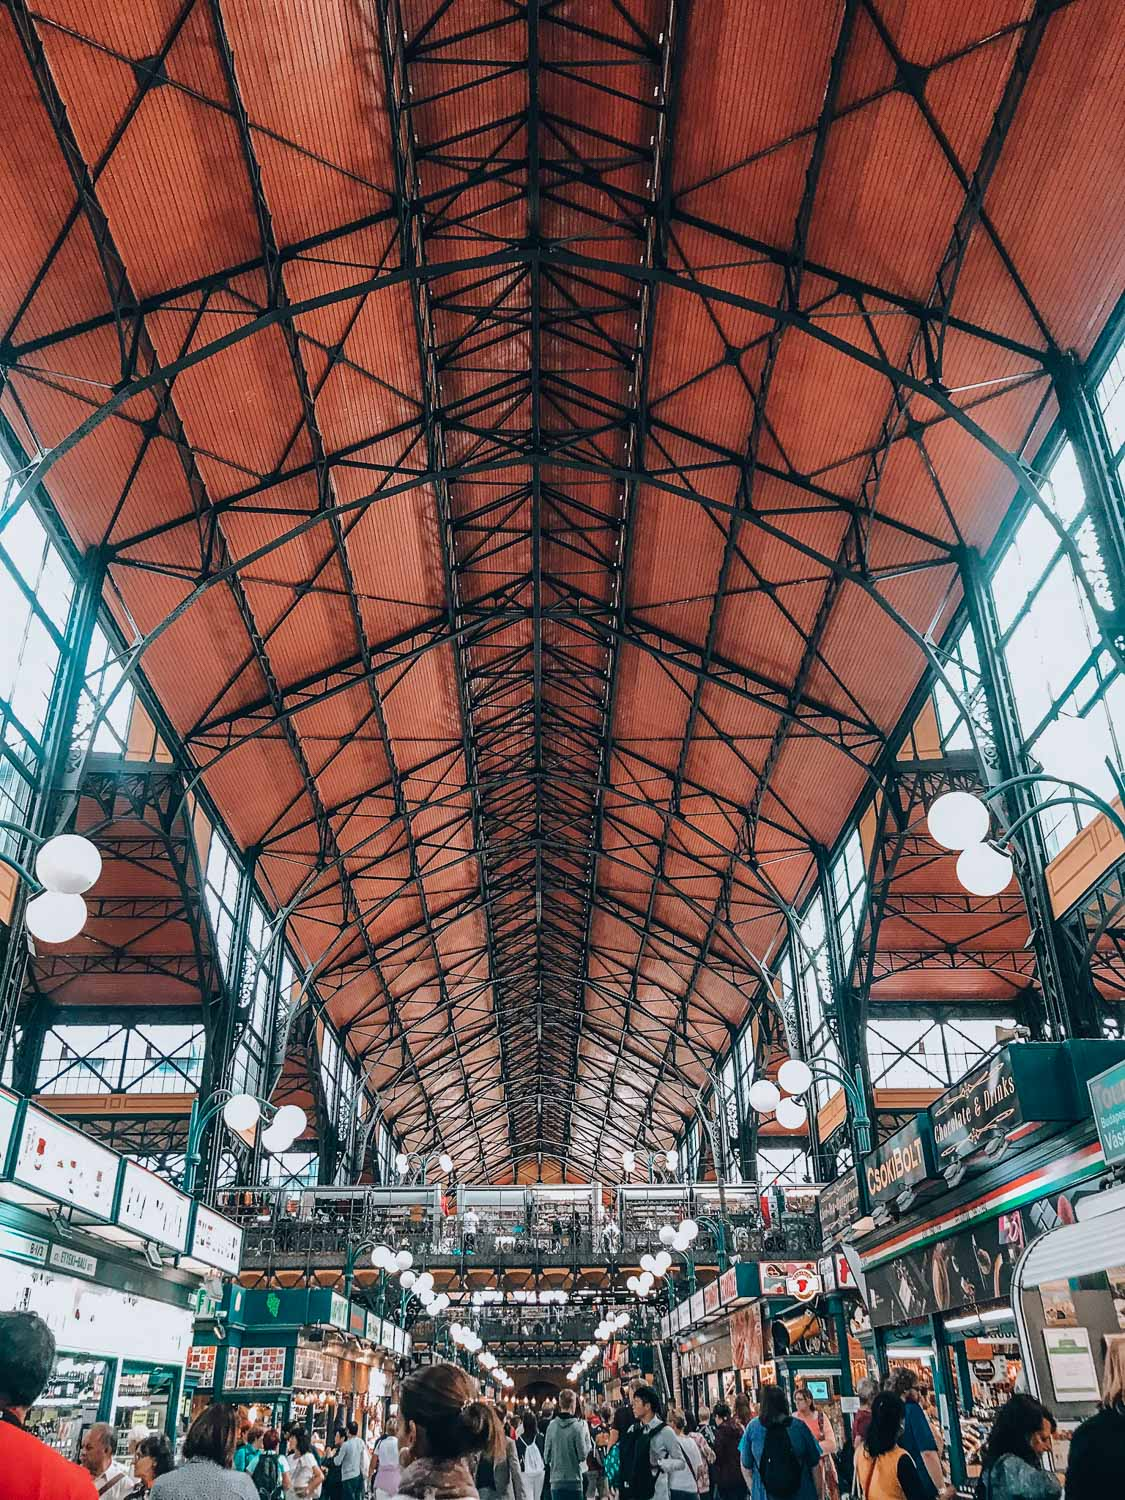 The Great Market Hall in Budapest is one of the best photo spots and needs to be on your list.